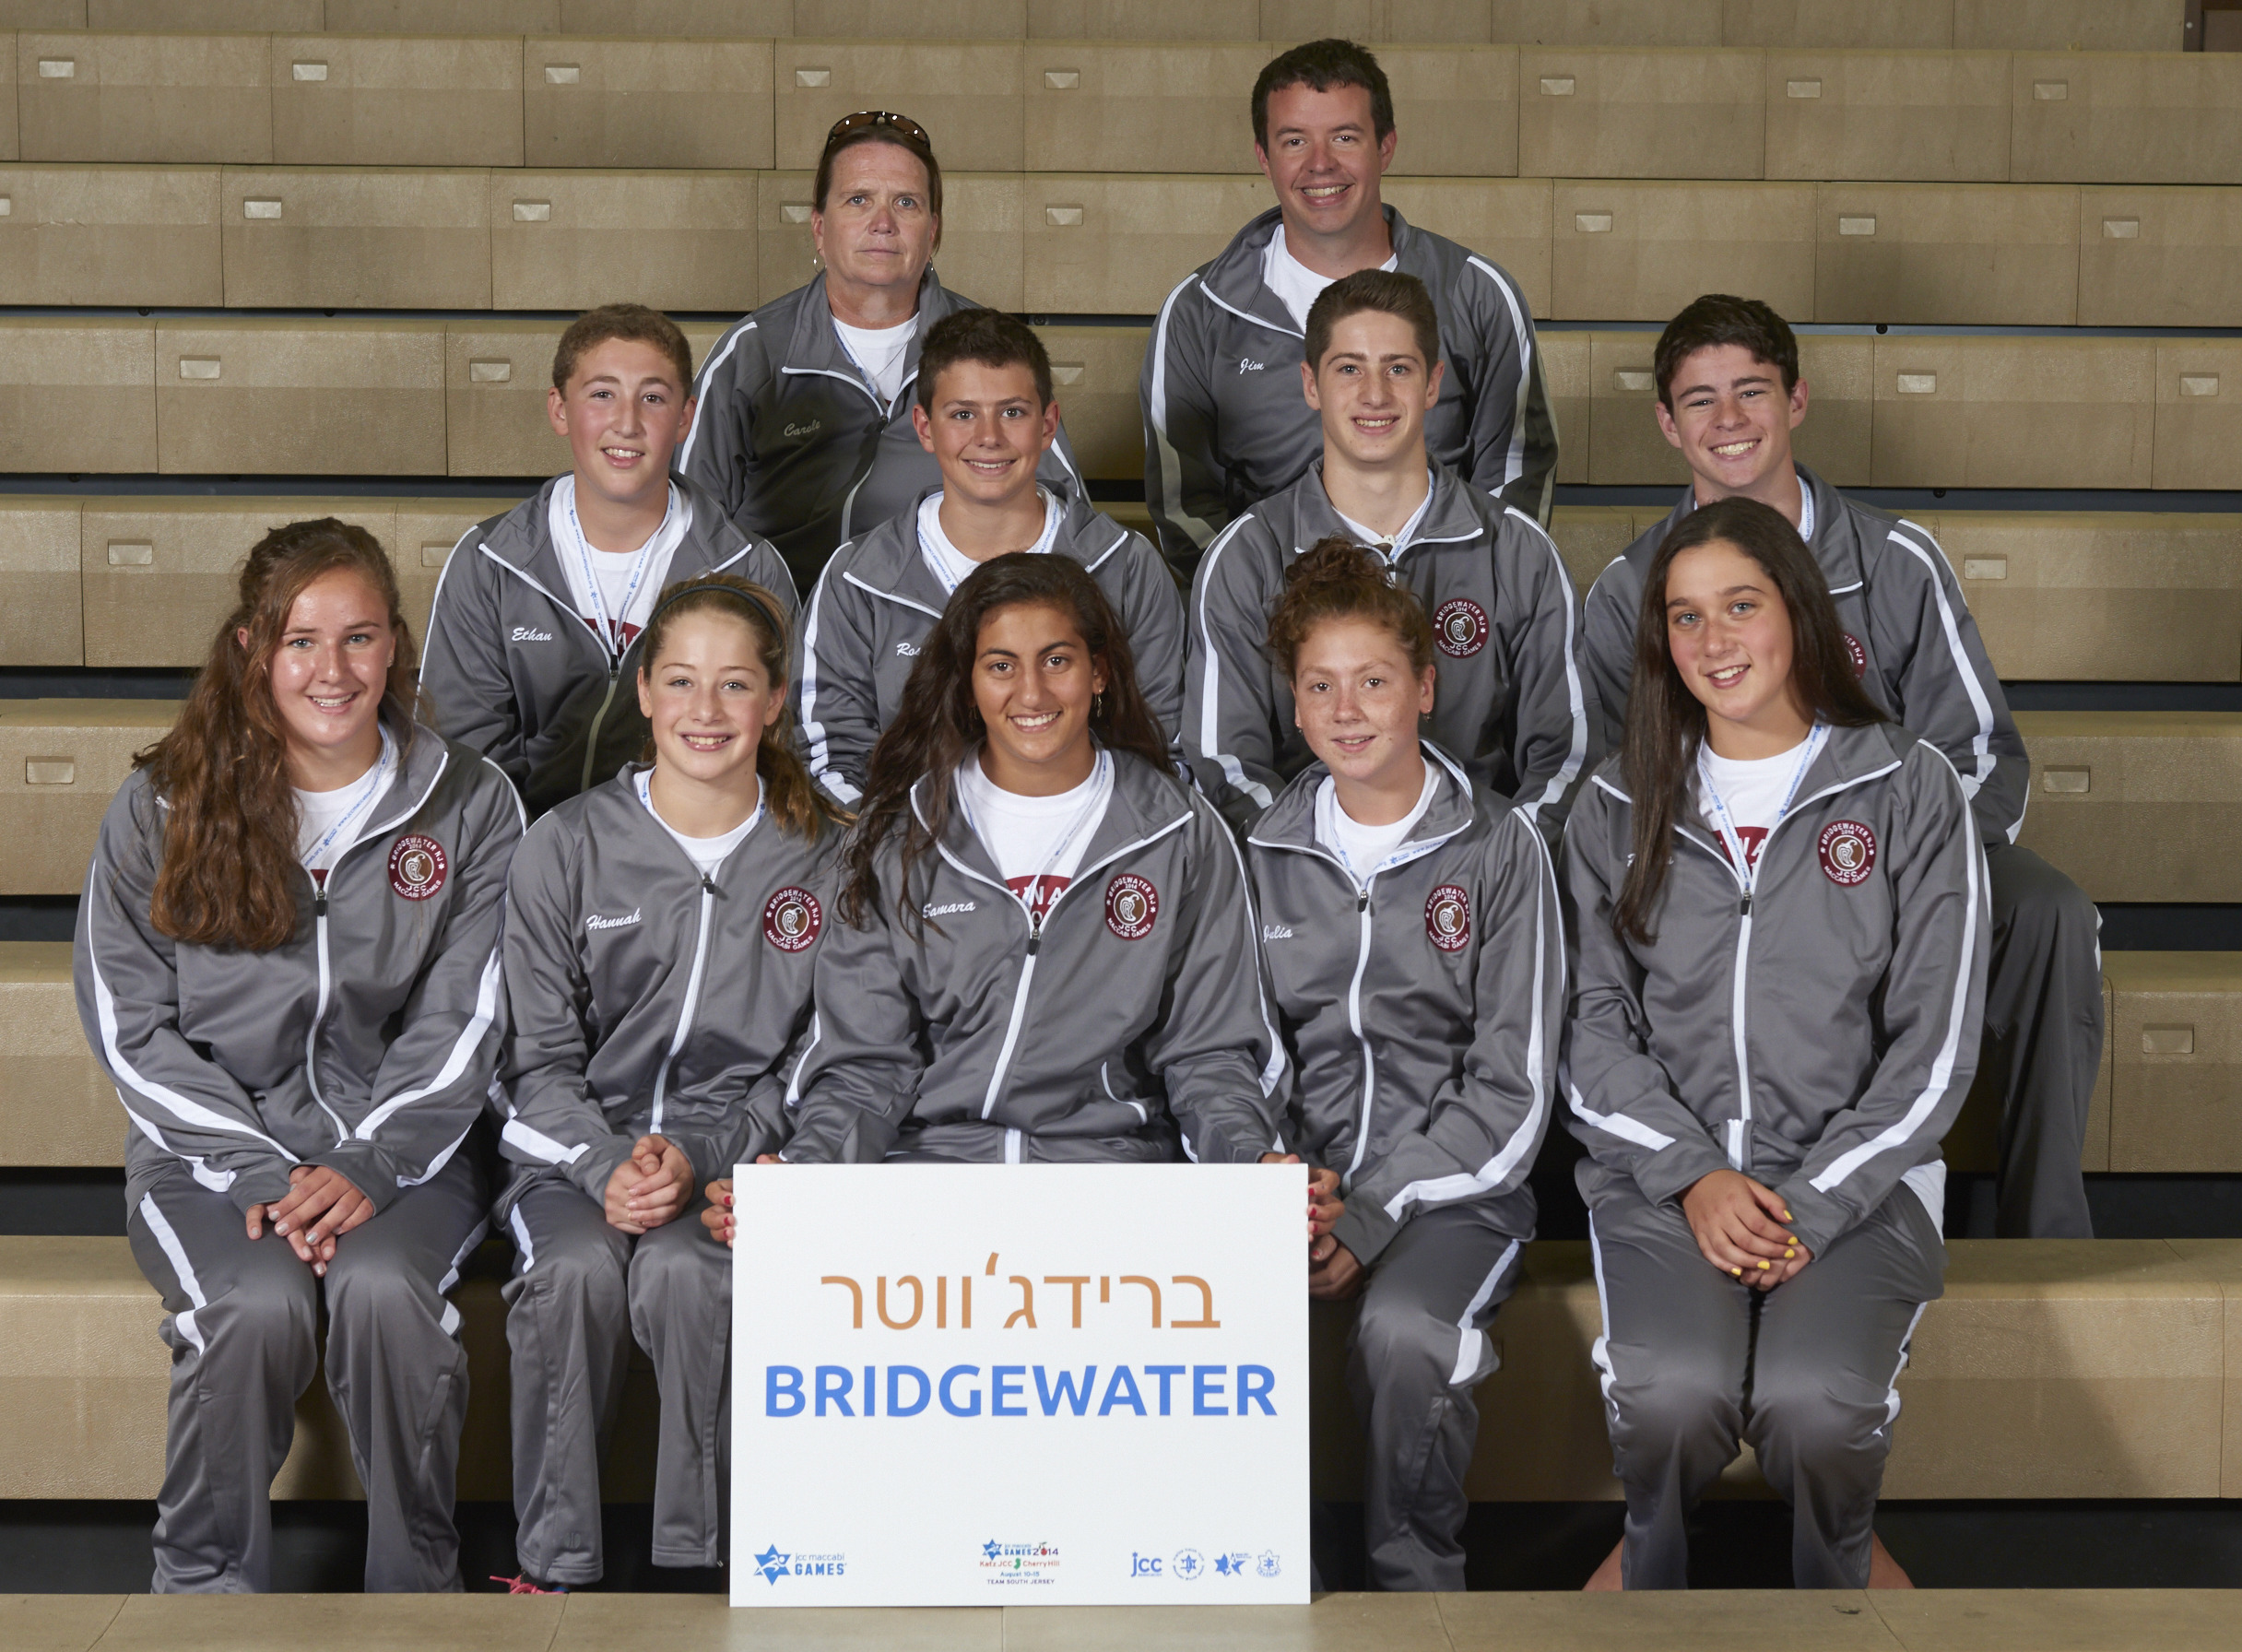 d9a2821edb07e66d4907_Maccabi_Games_2014_-_Delegation_photo_Cropped__8-10-14.jpg